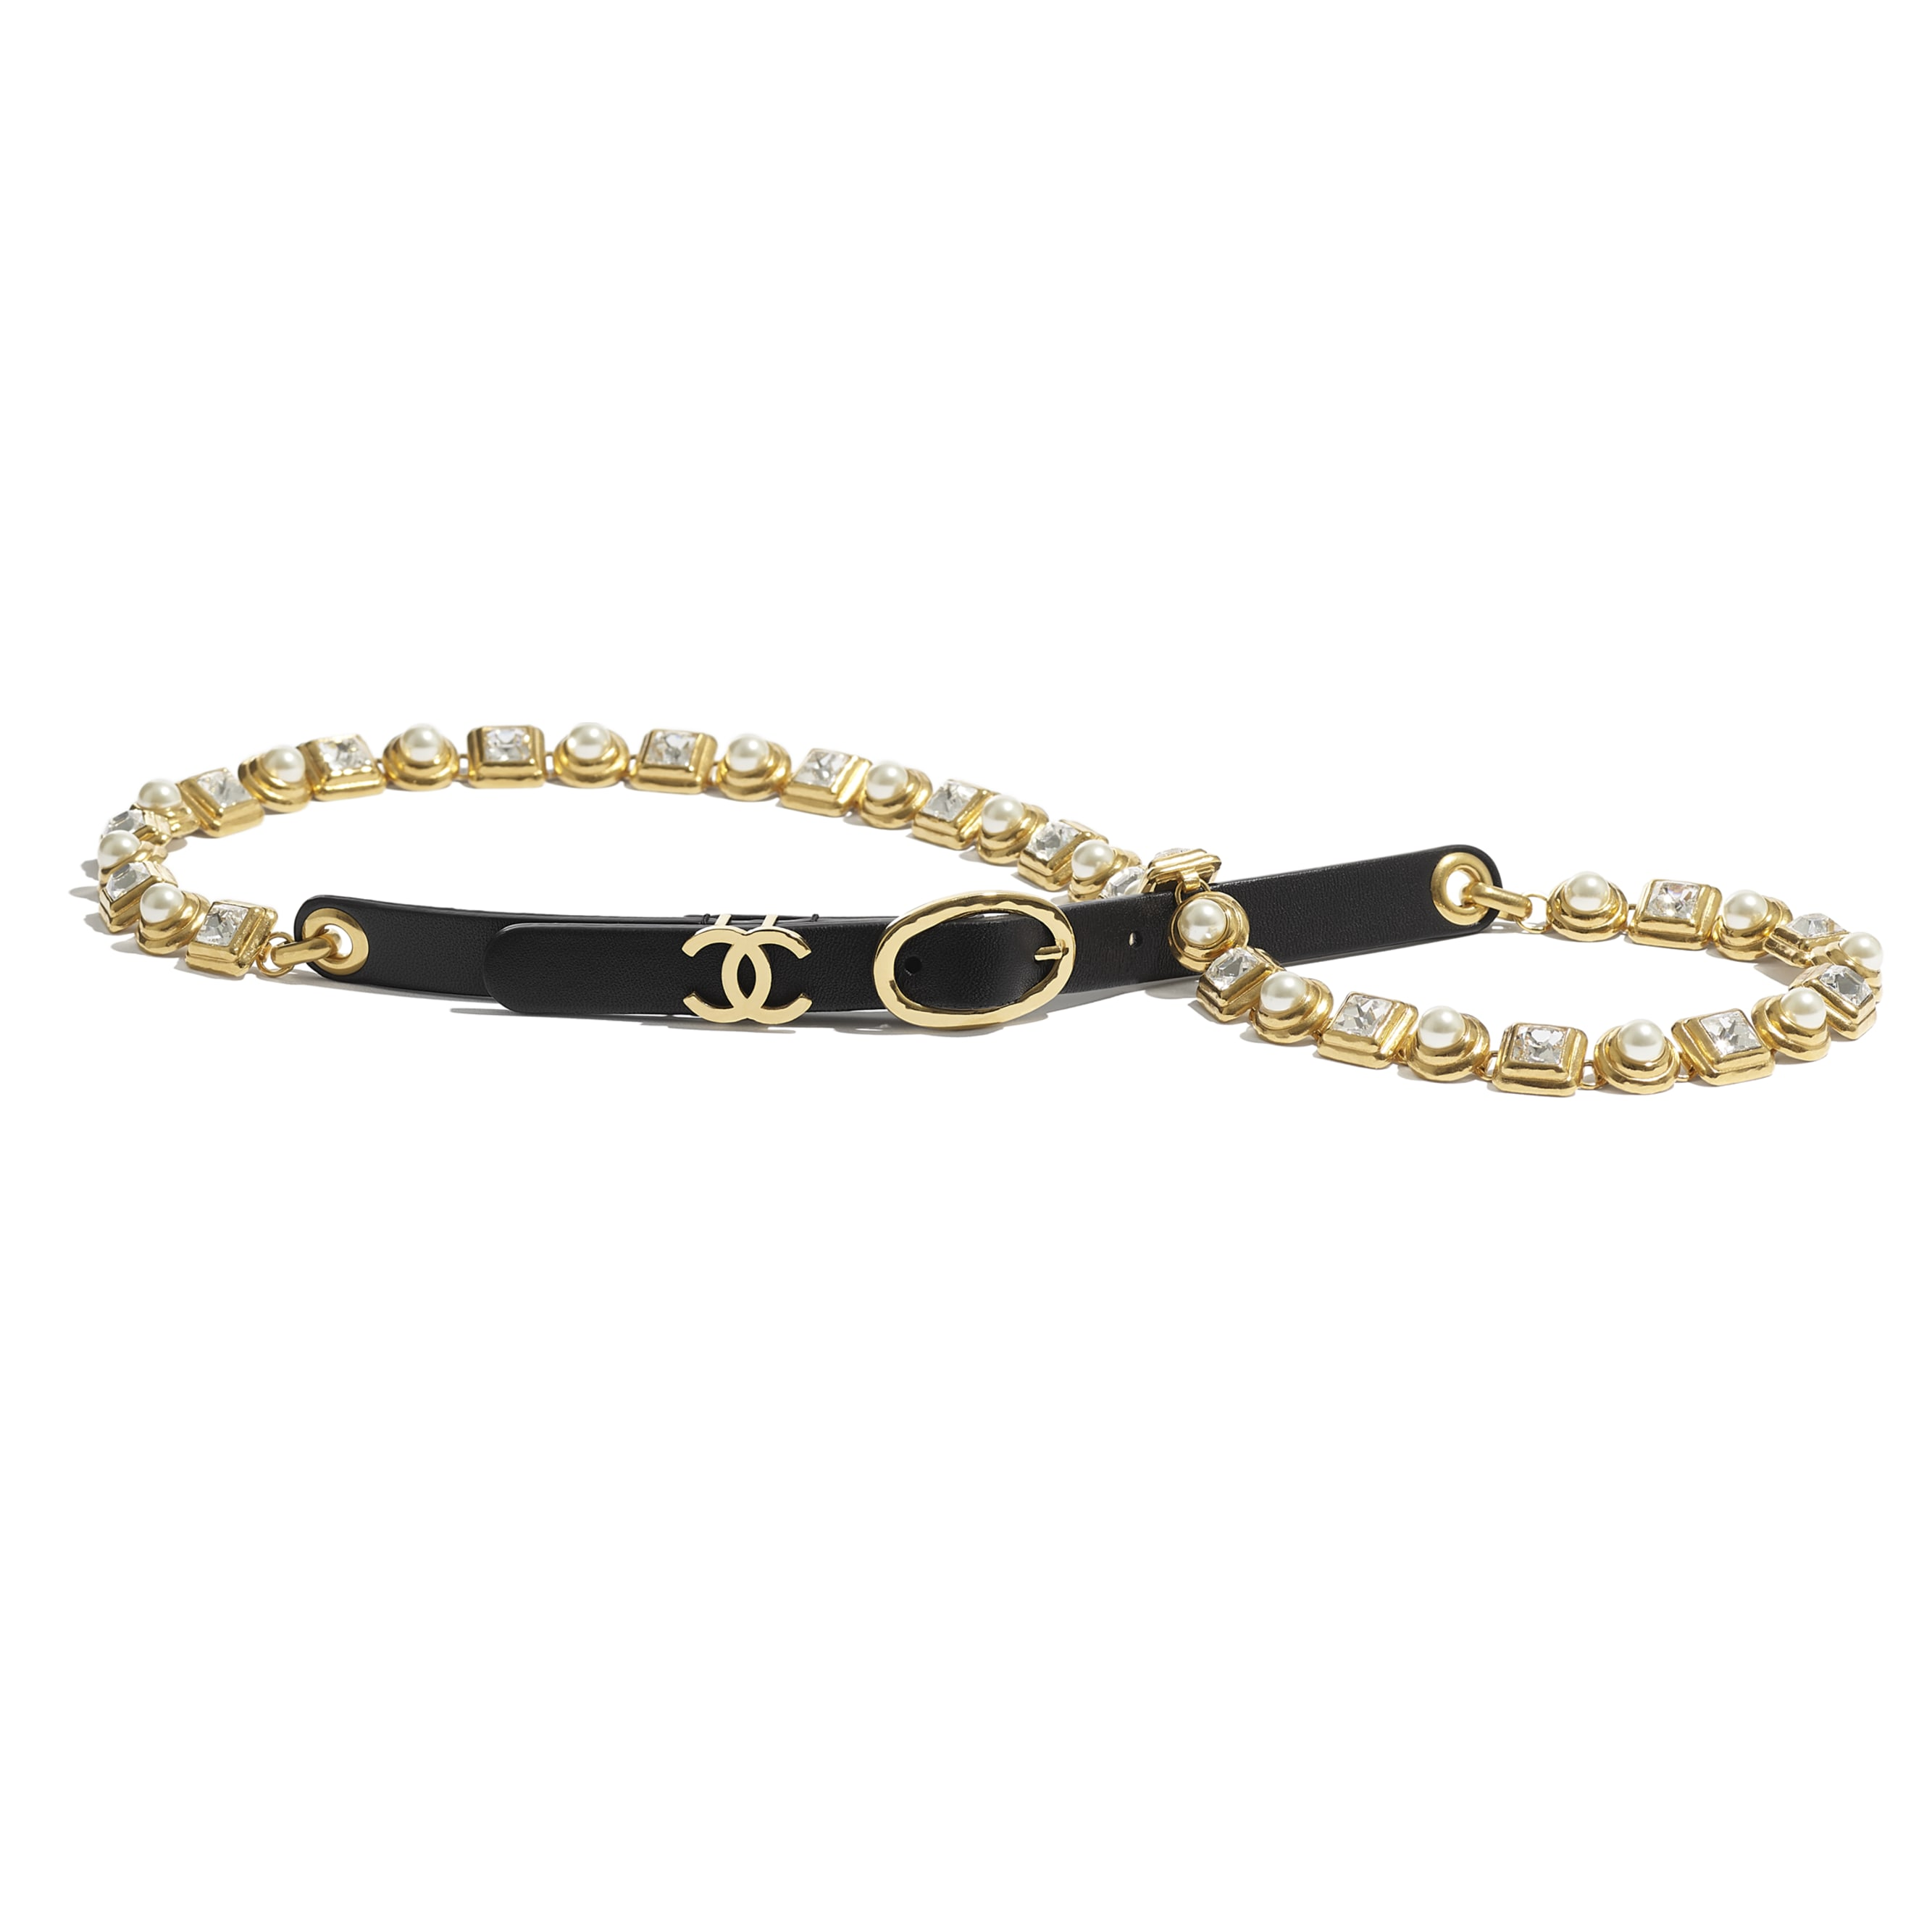 Belt - Black - Calfskin, Gold-Tone Metal, Glass Pearls & Strass - CHANEL - Default view - see standard sized version